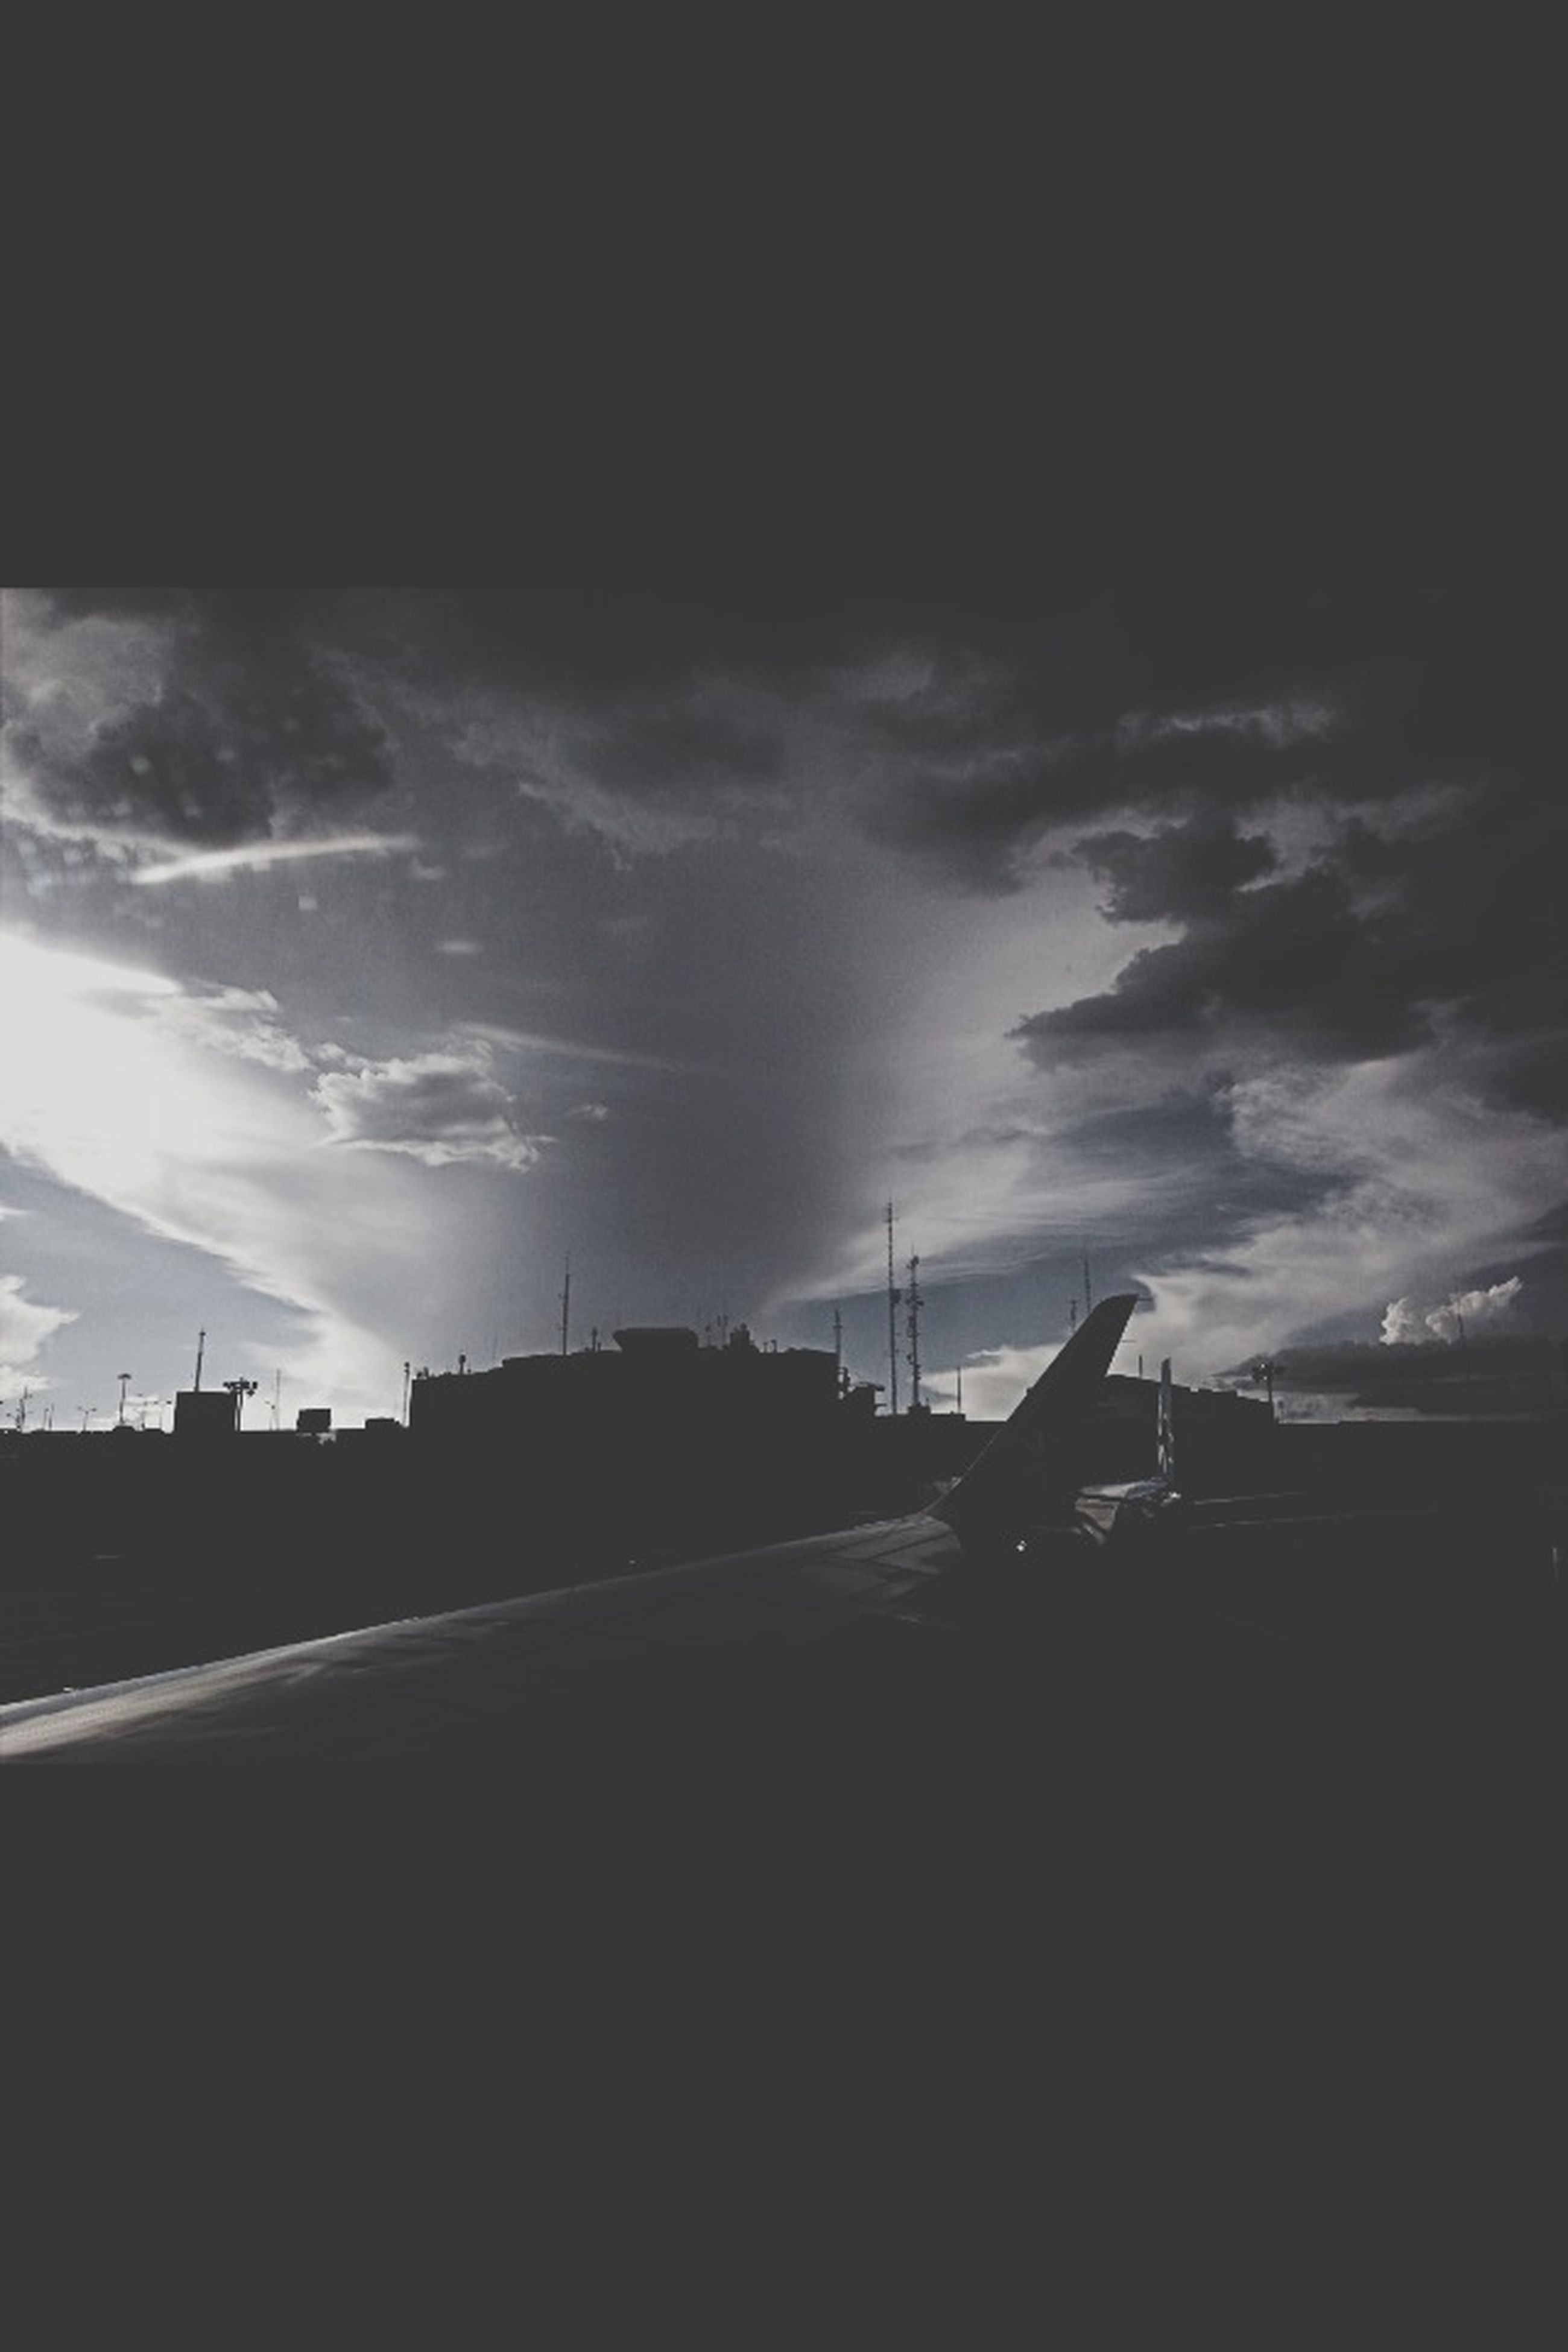 sky, cloud - sky, silhouette, cloudy, transportation, road, cloud, built structure, the way forward, weather, nature, dusk, street, outdoors, sunset, overcast, tranquility, no people, sunlight, architecture